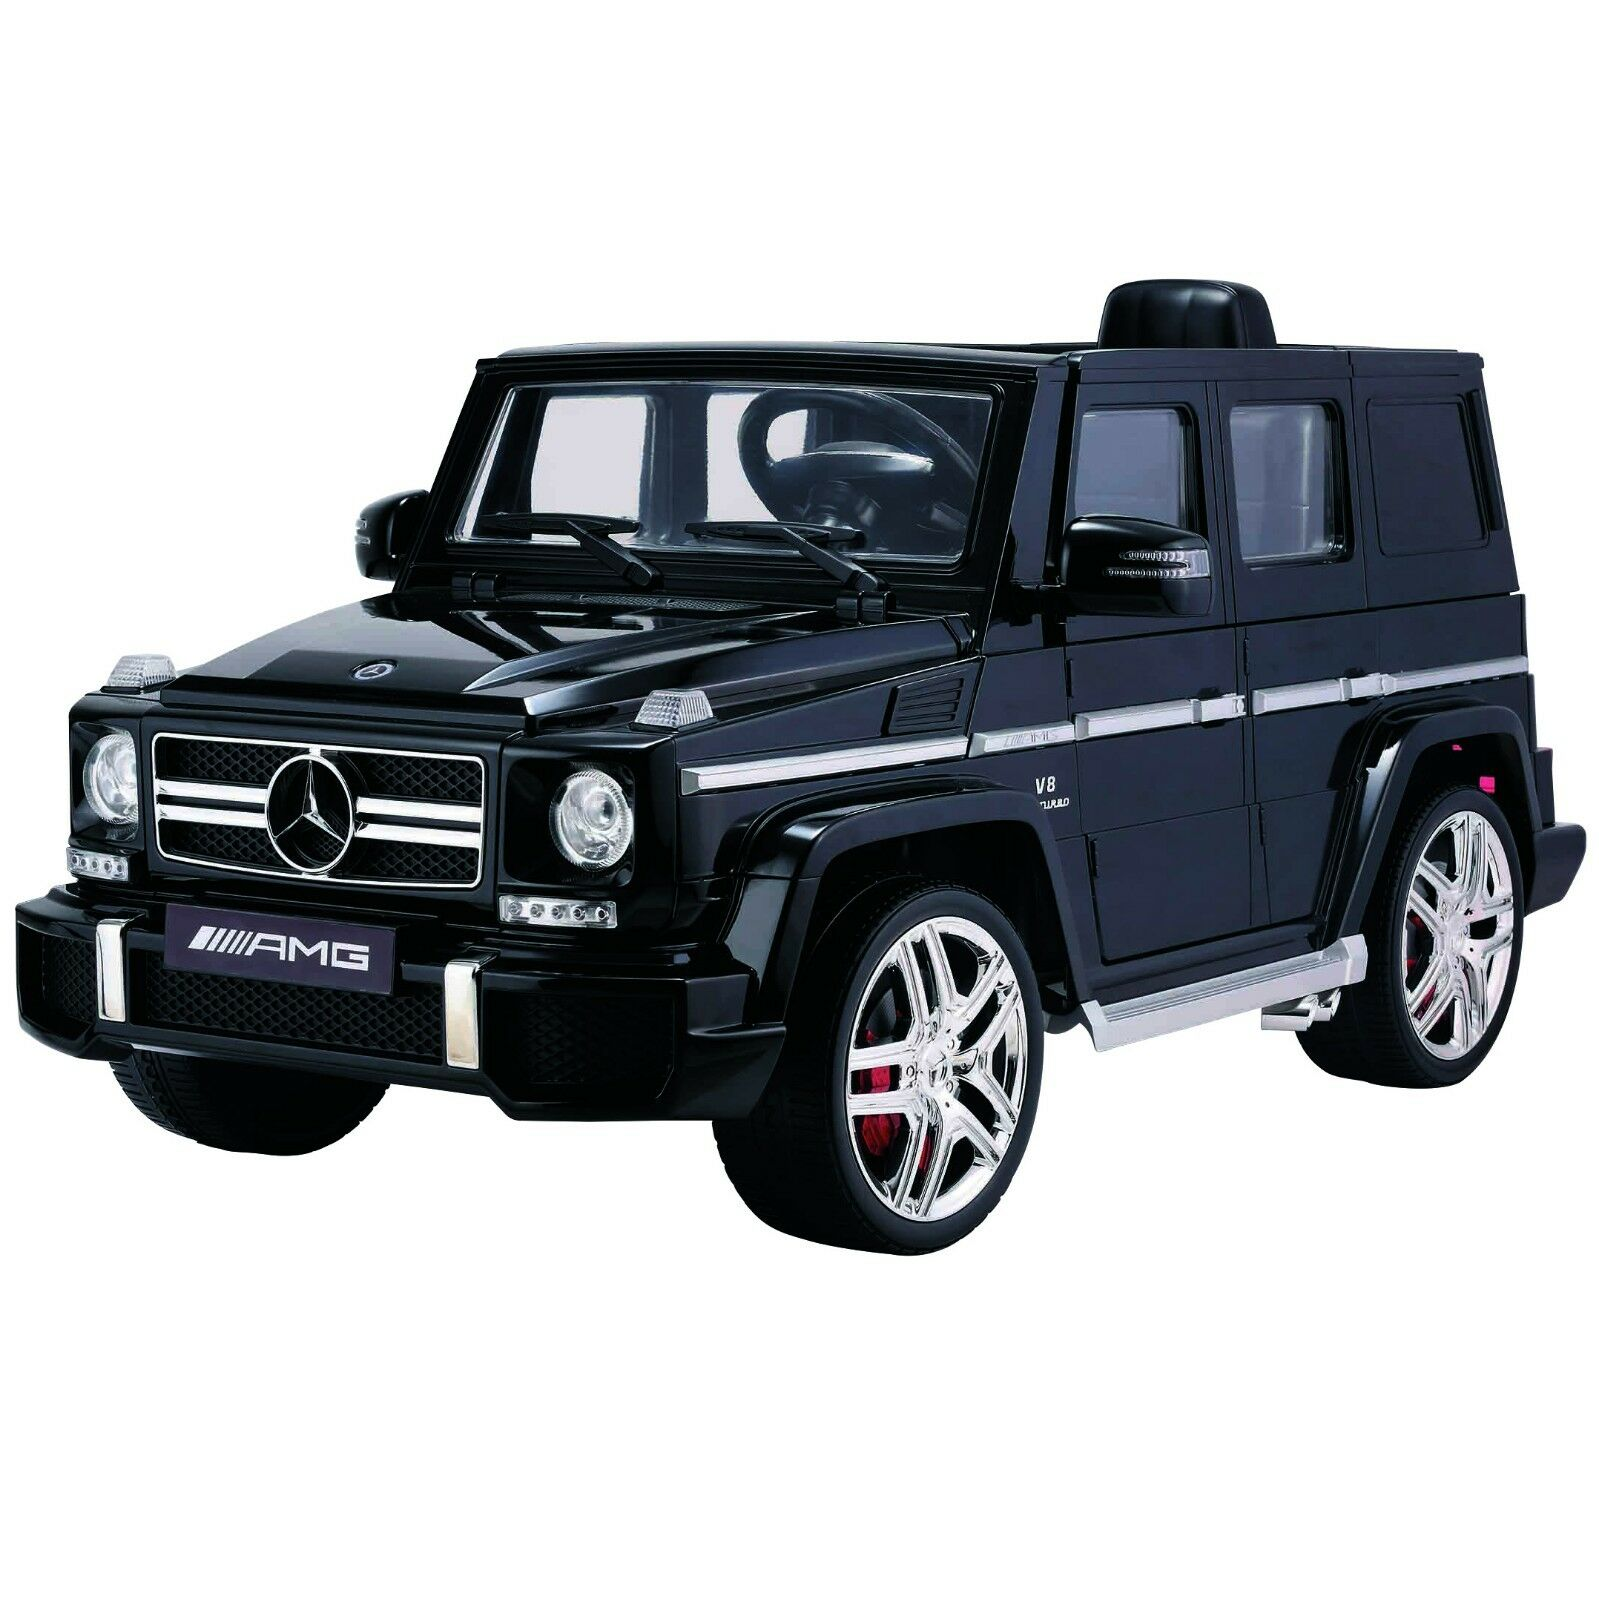 Black licensed mercedes benz kids electric ride on car toy for Mercedes benz kids